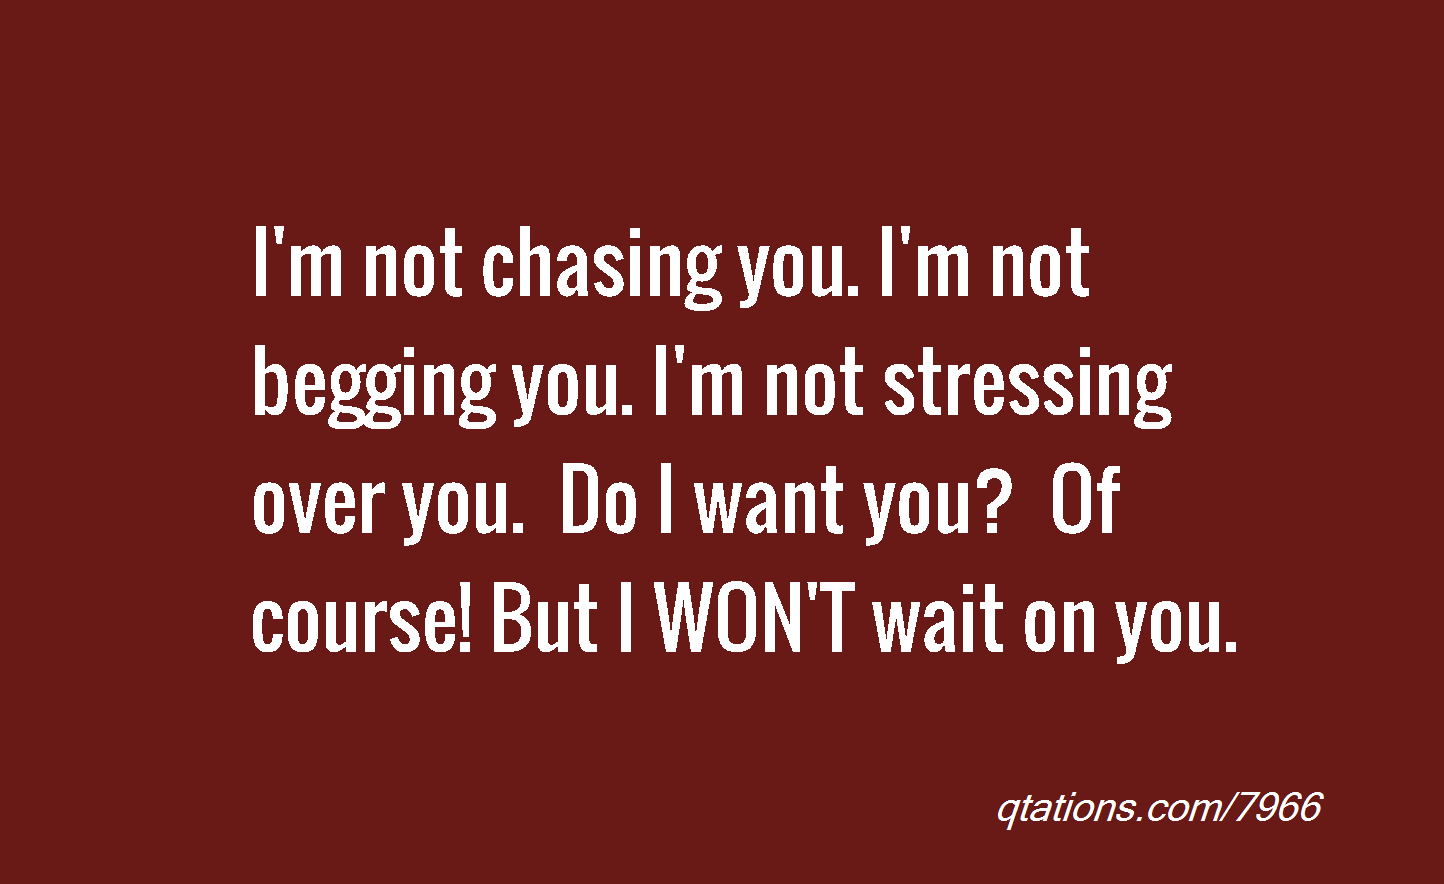 Im Done Chasing You Quotes. QuotesGram